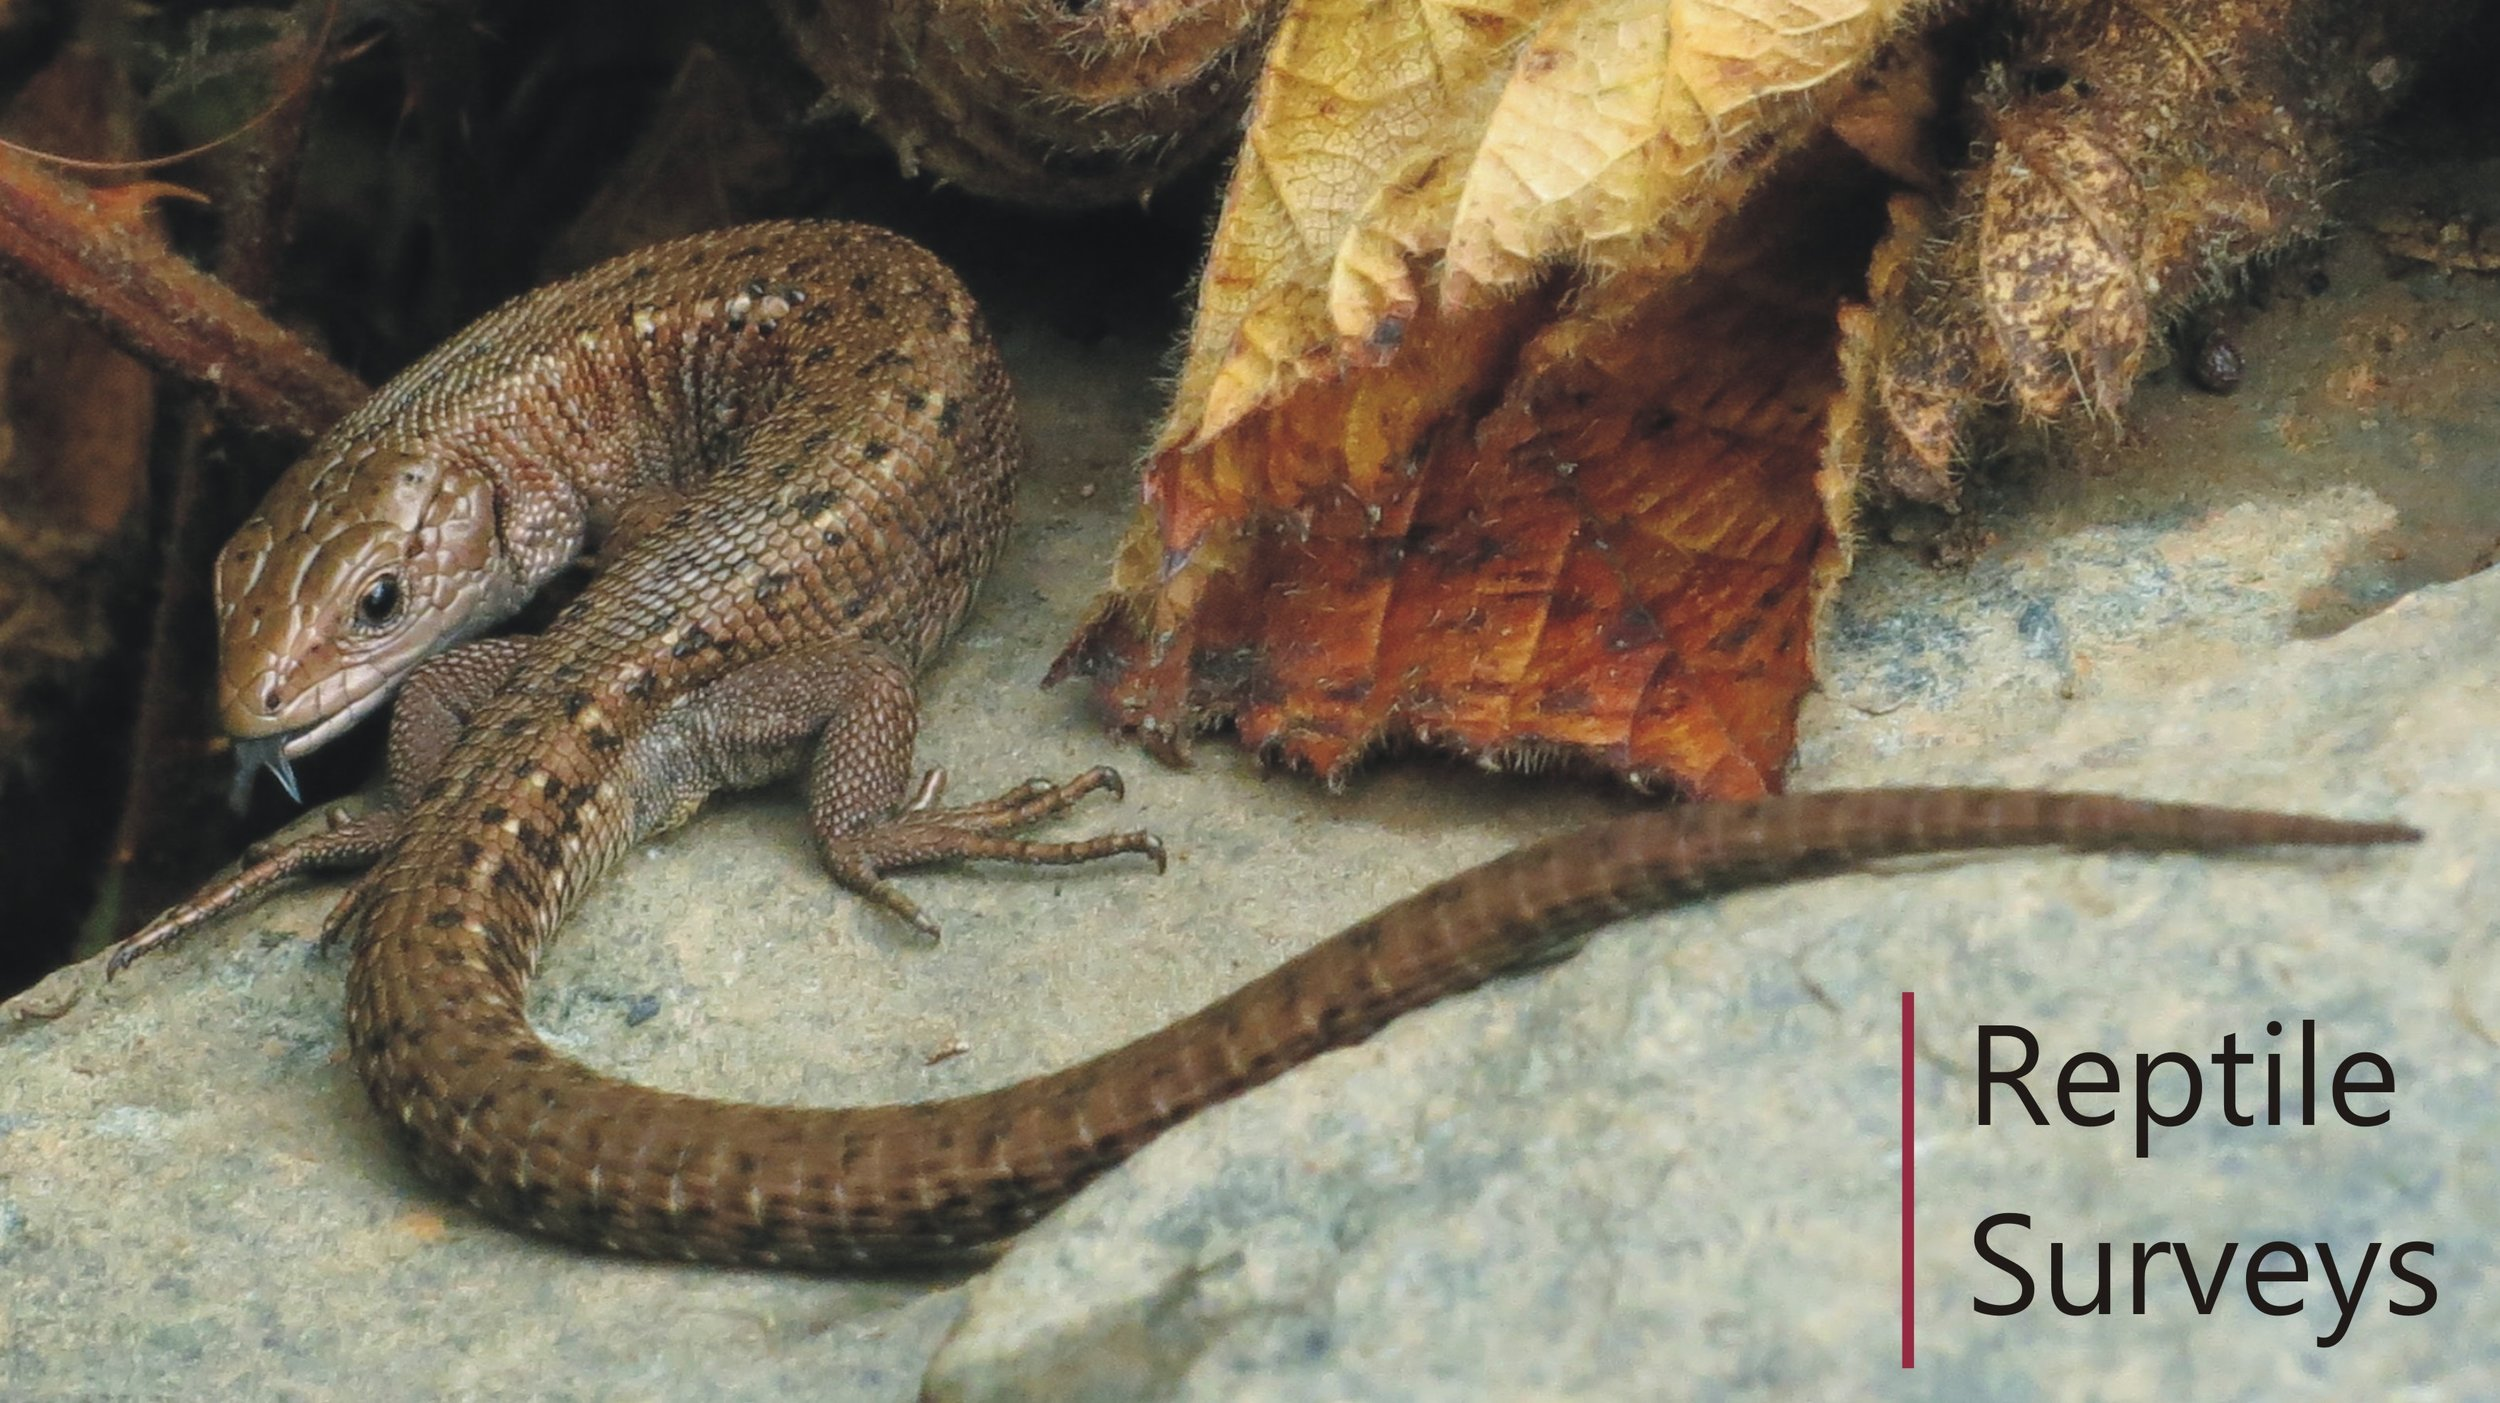 Common lizard found during a Reptile survey in Nottinghamshire, grass snake also found